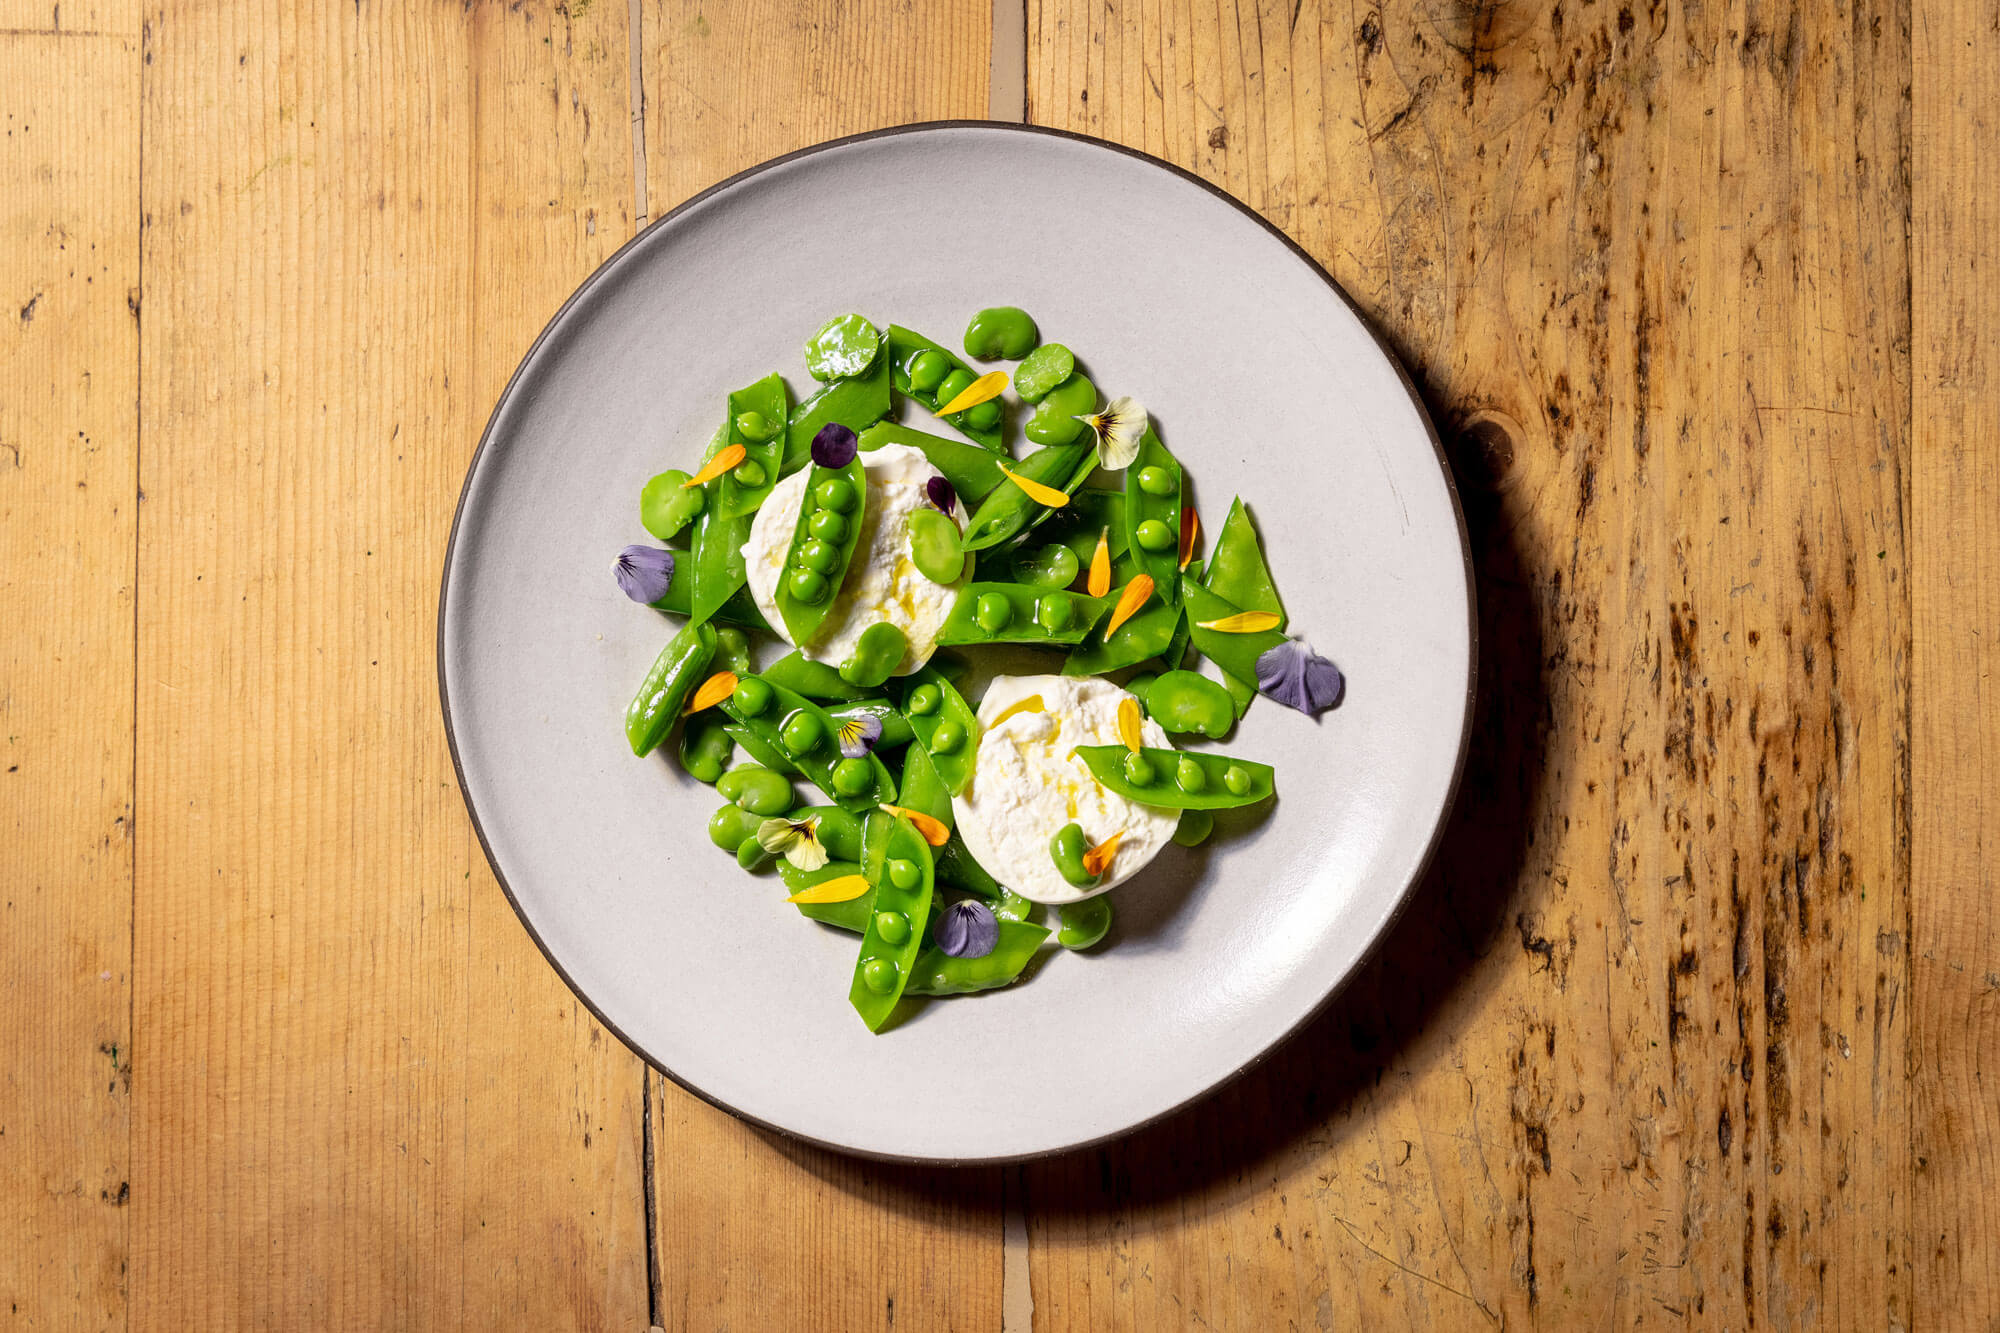 A dish filled with fresh green peas, flowers and cheese